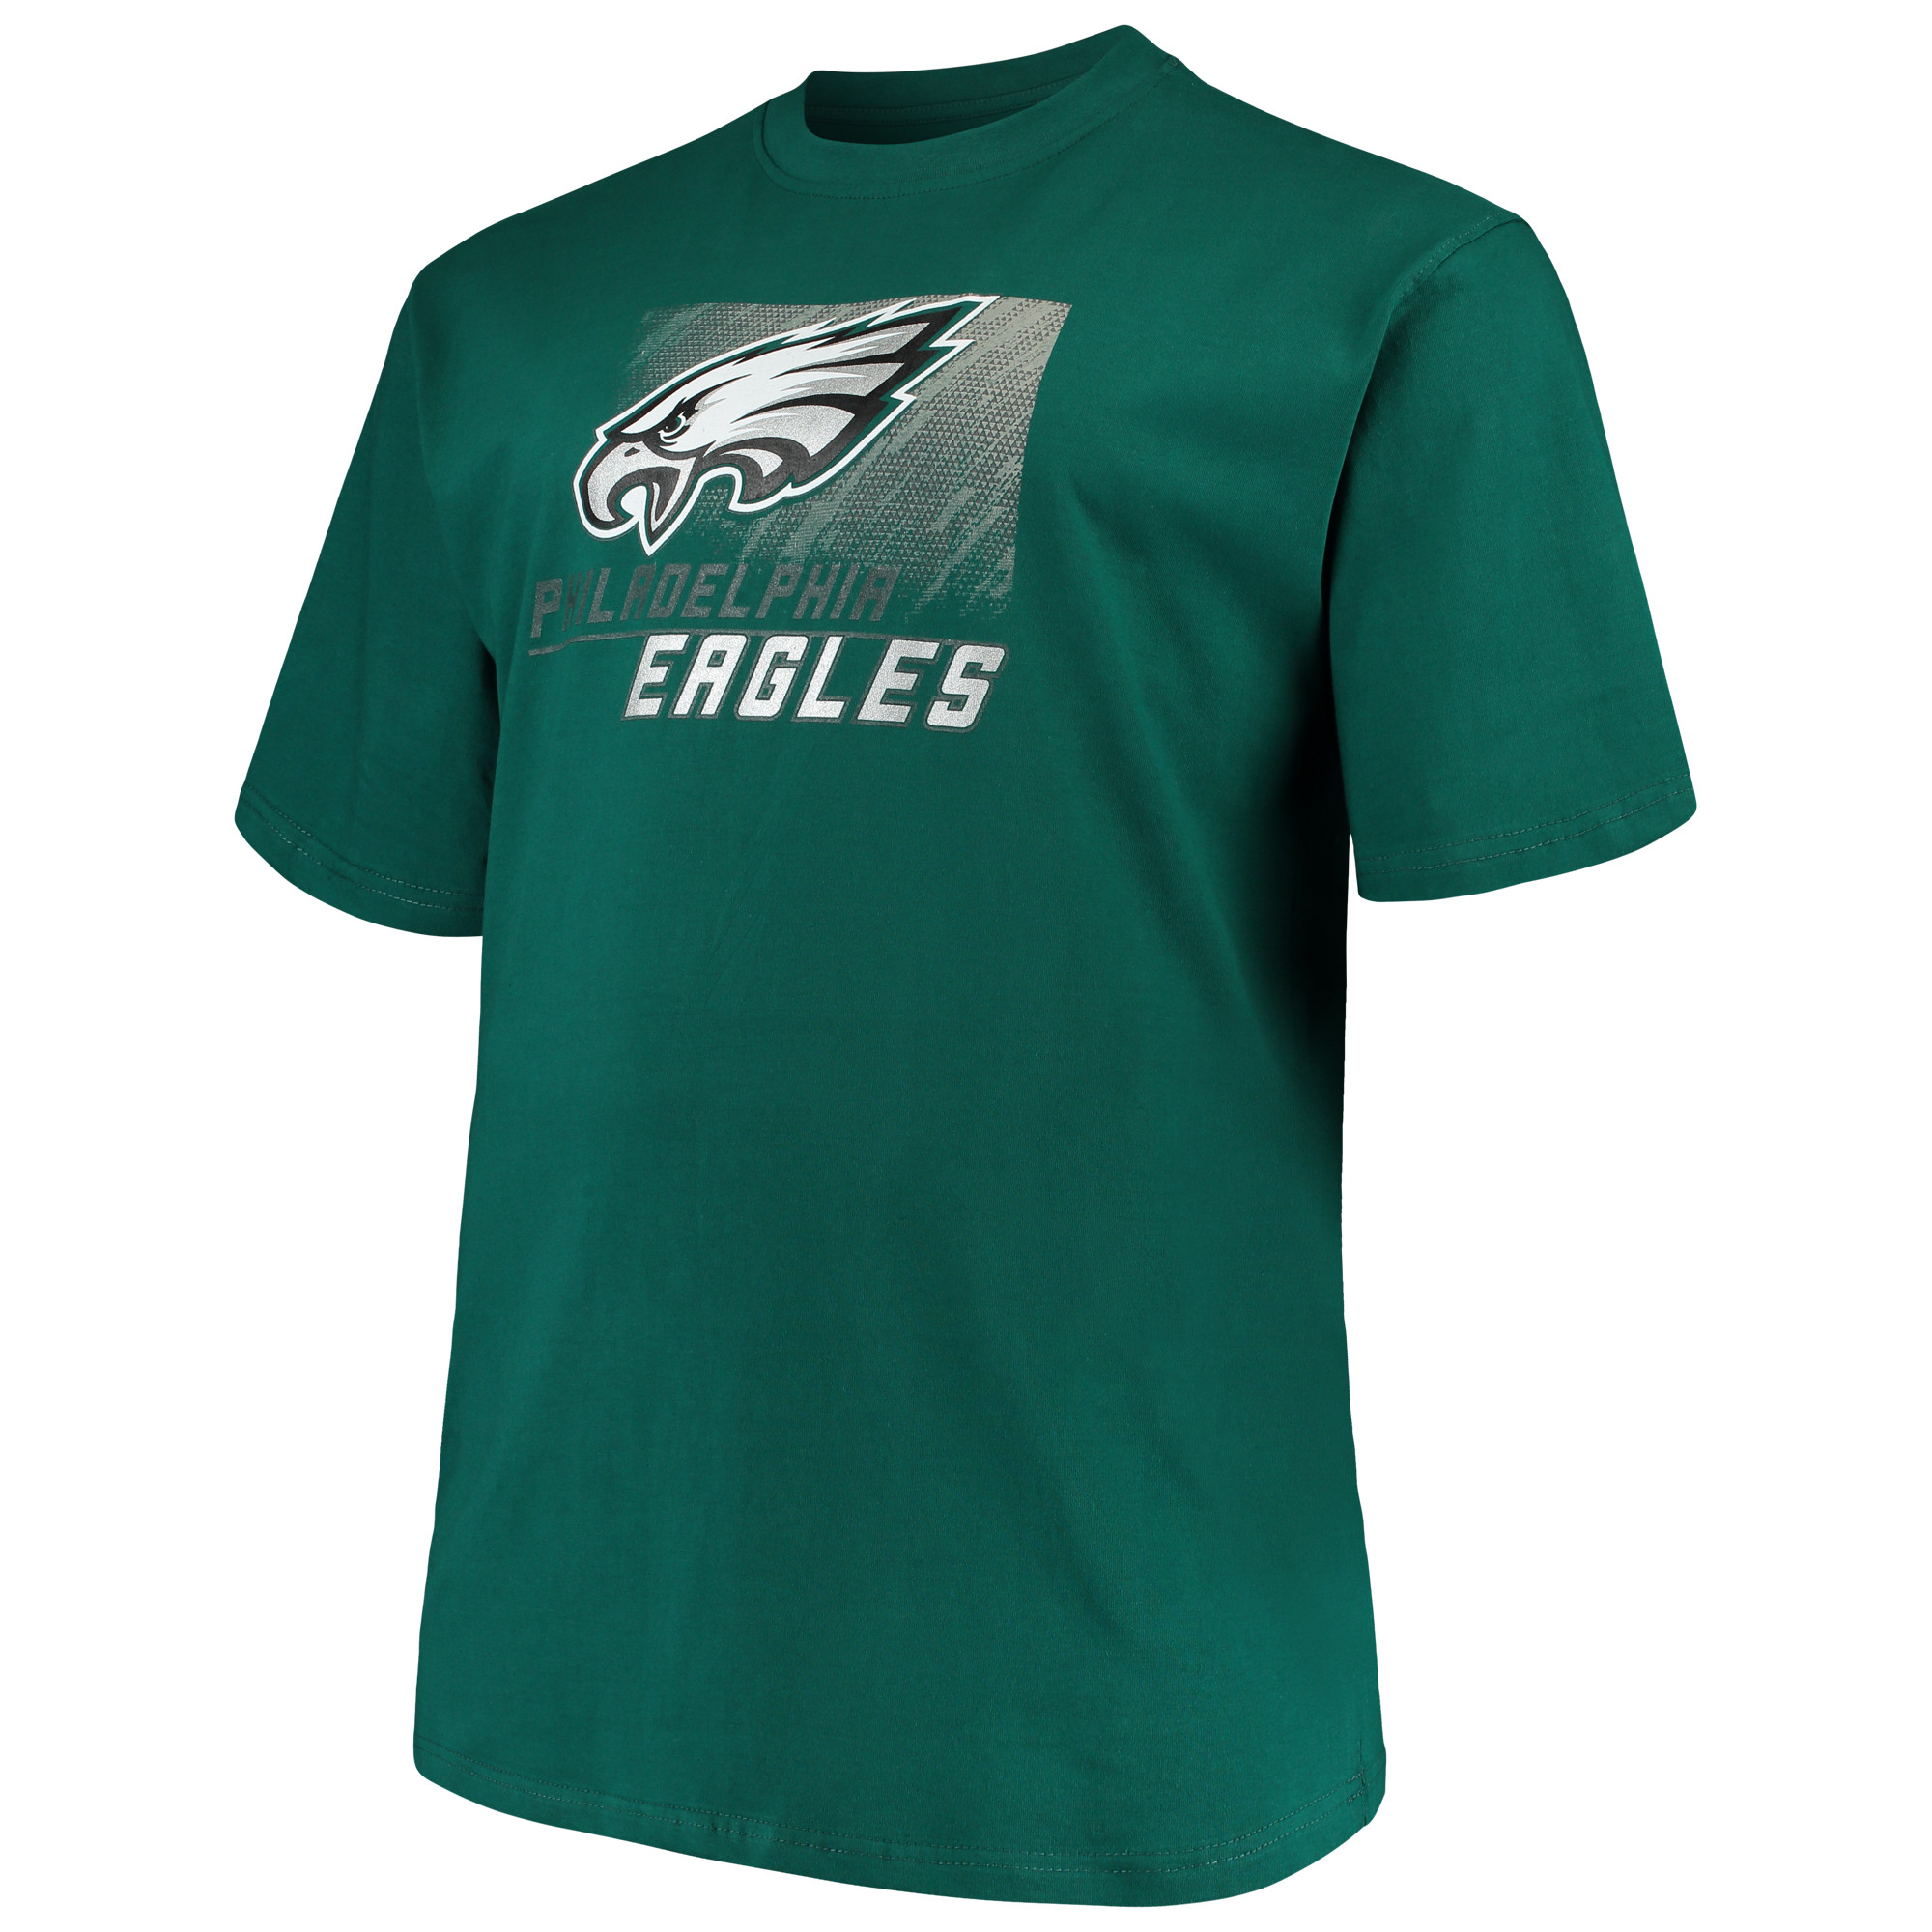 Men's Majestic Midnight Green Philadelphia Eagles Big & Tall Reflective T-Shirt